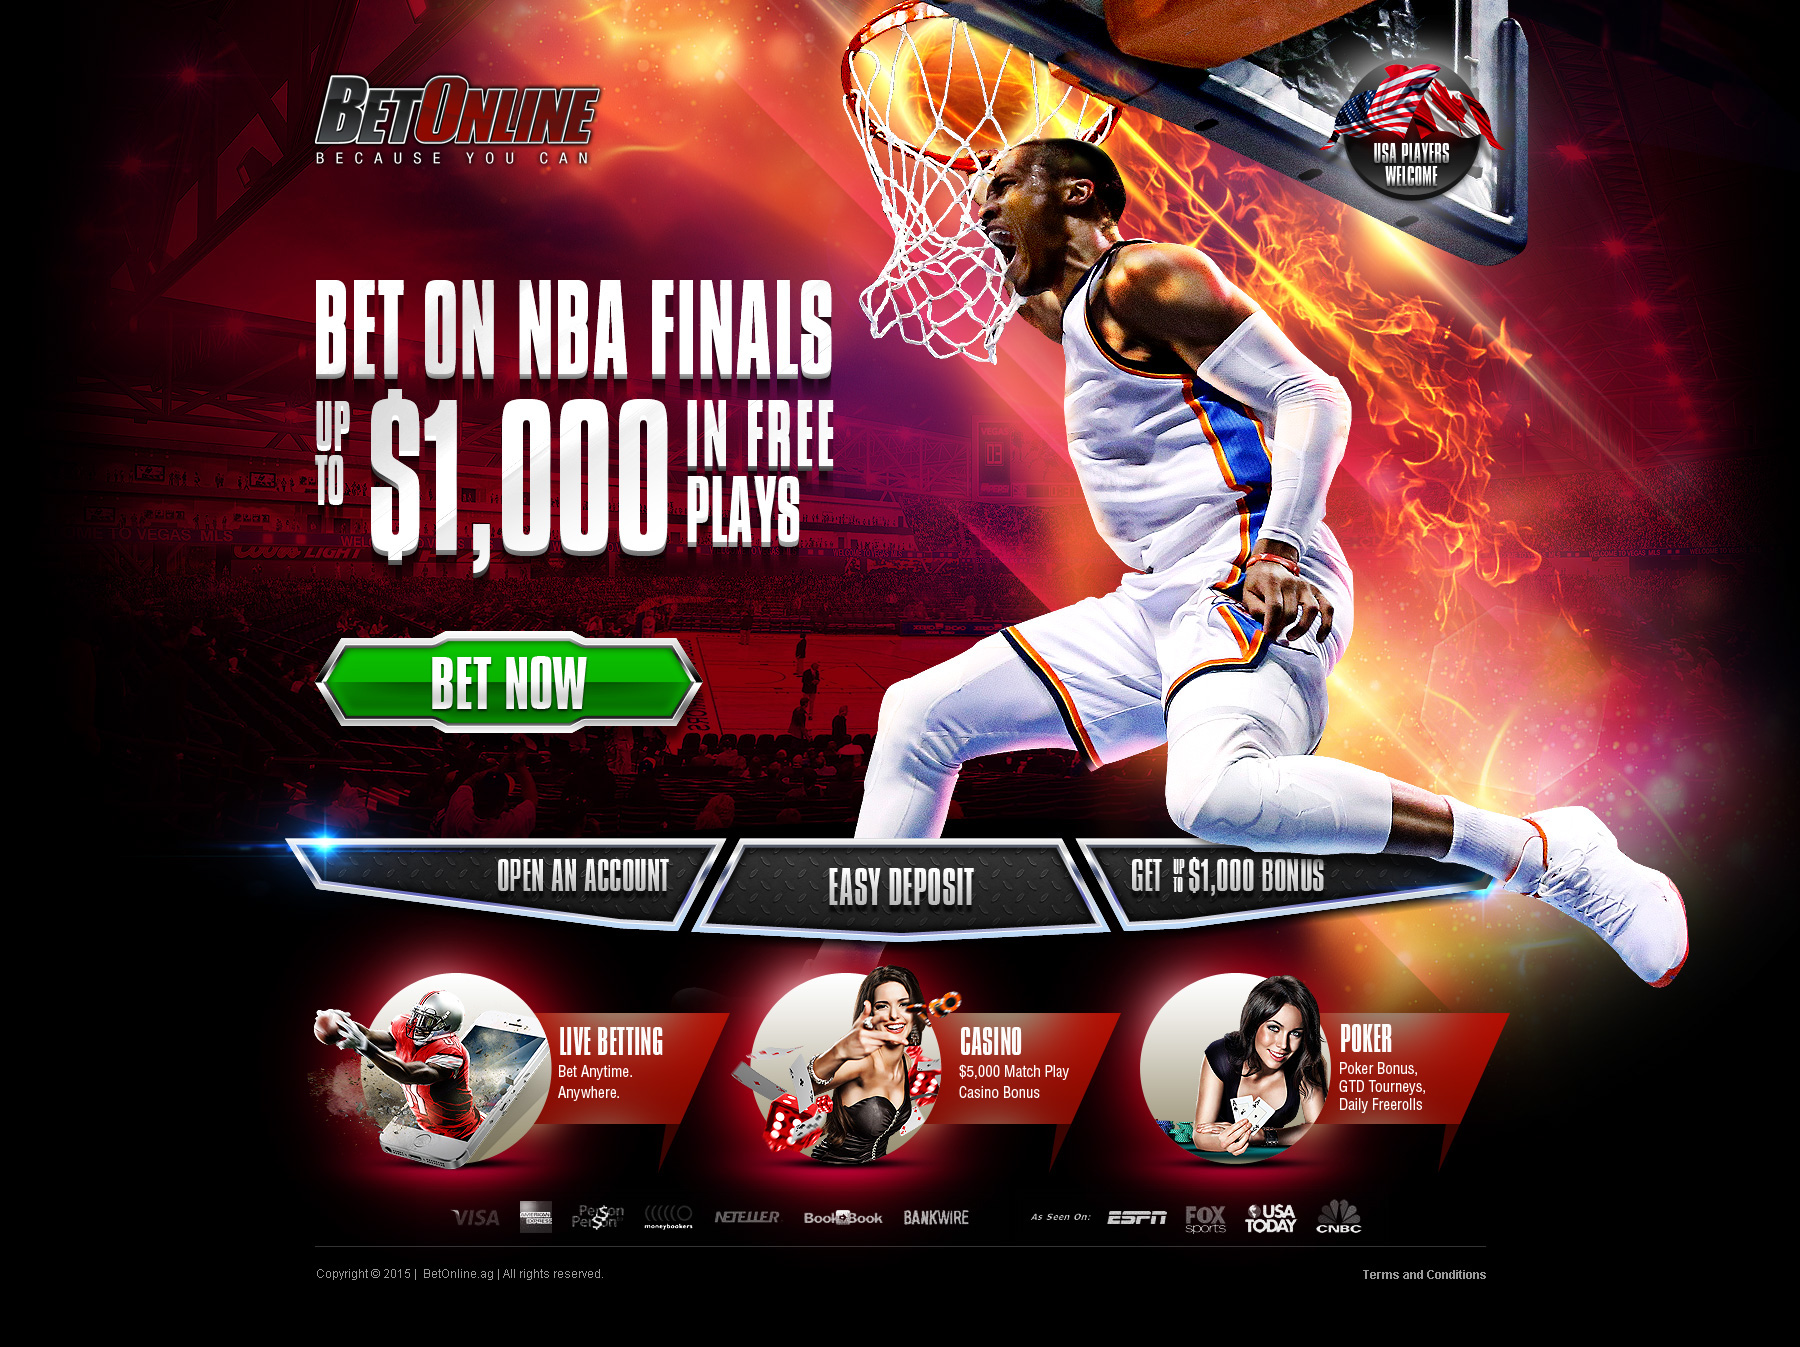 Project 202 betting on sports fun superbowl betting games